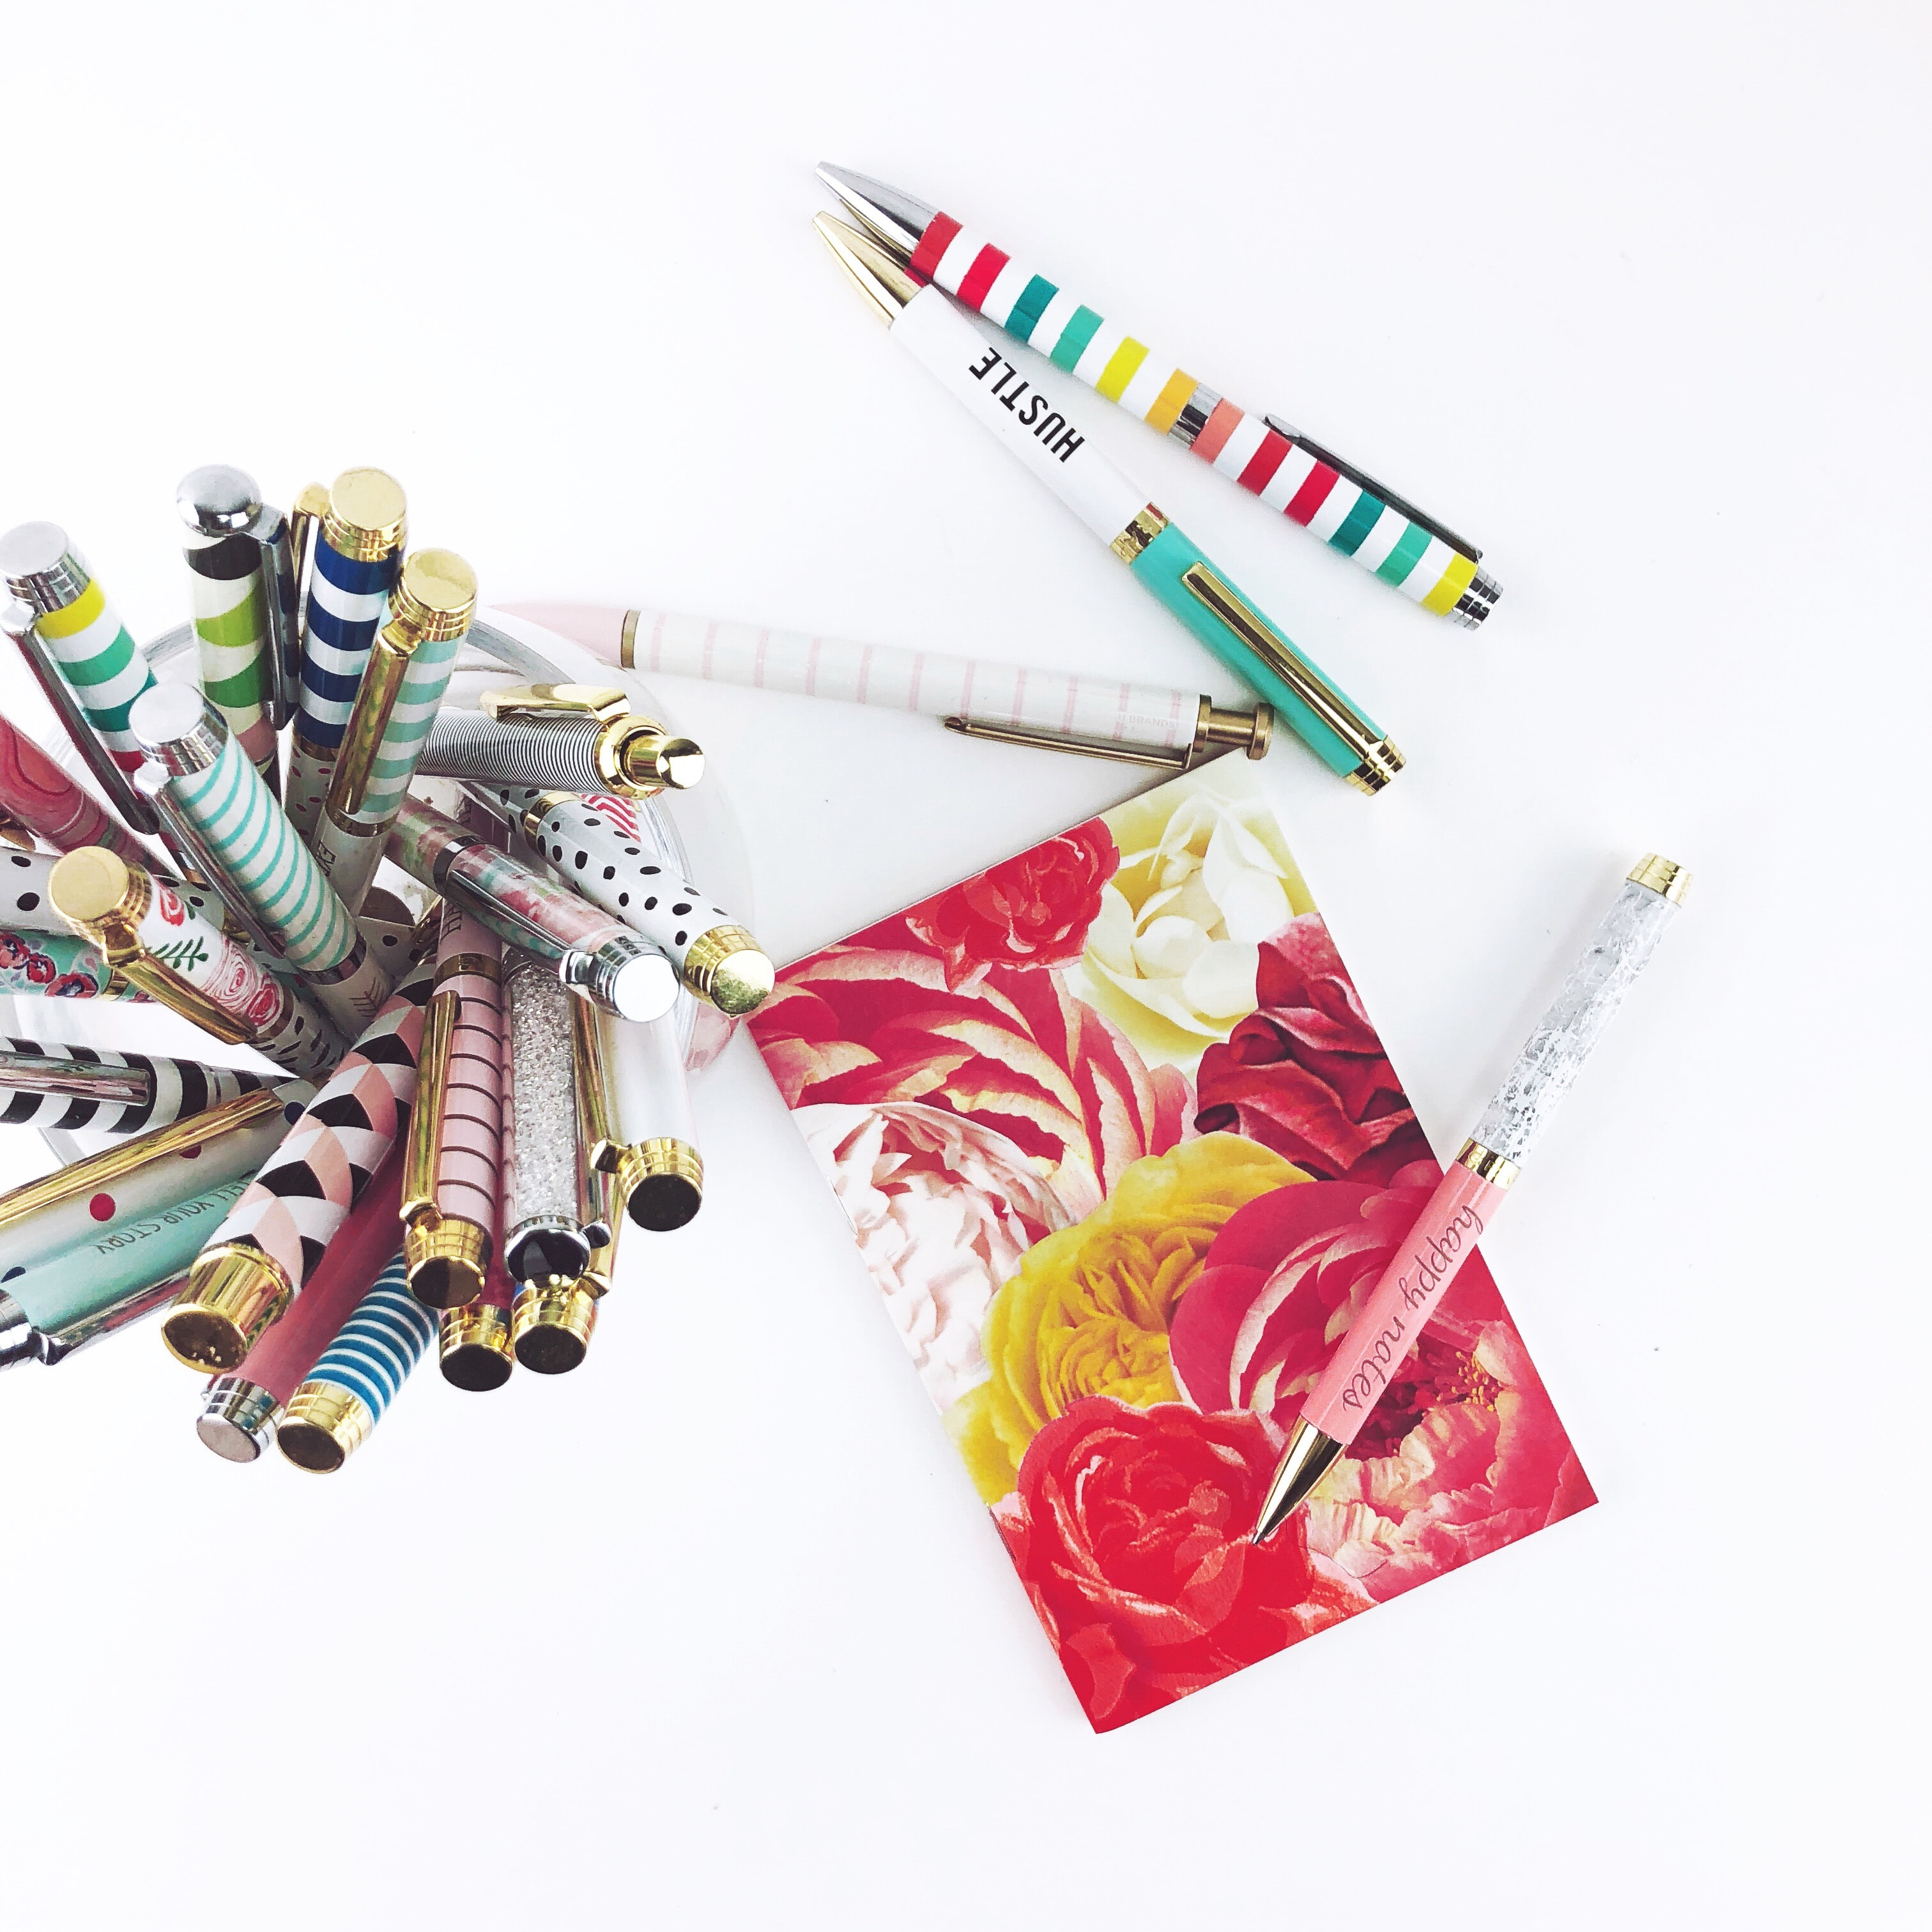 assorted-color retractable pen on white background